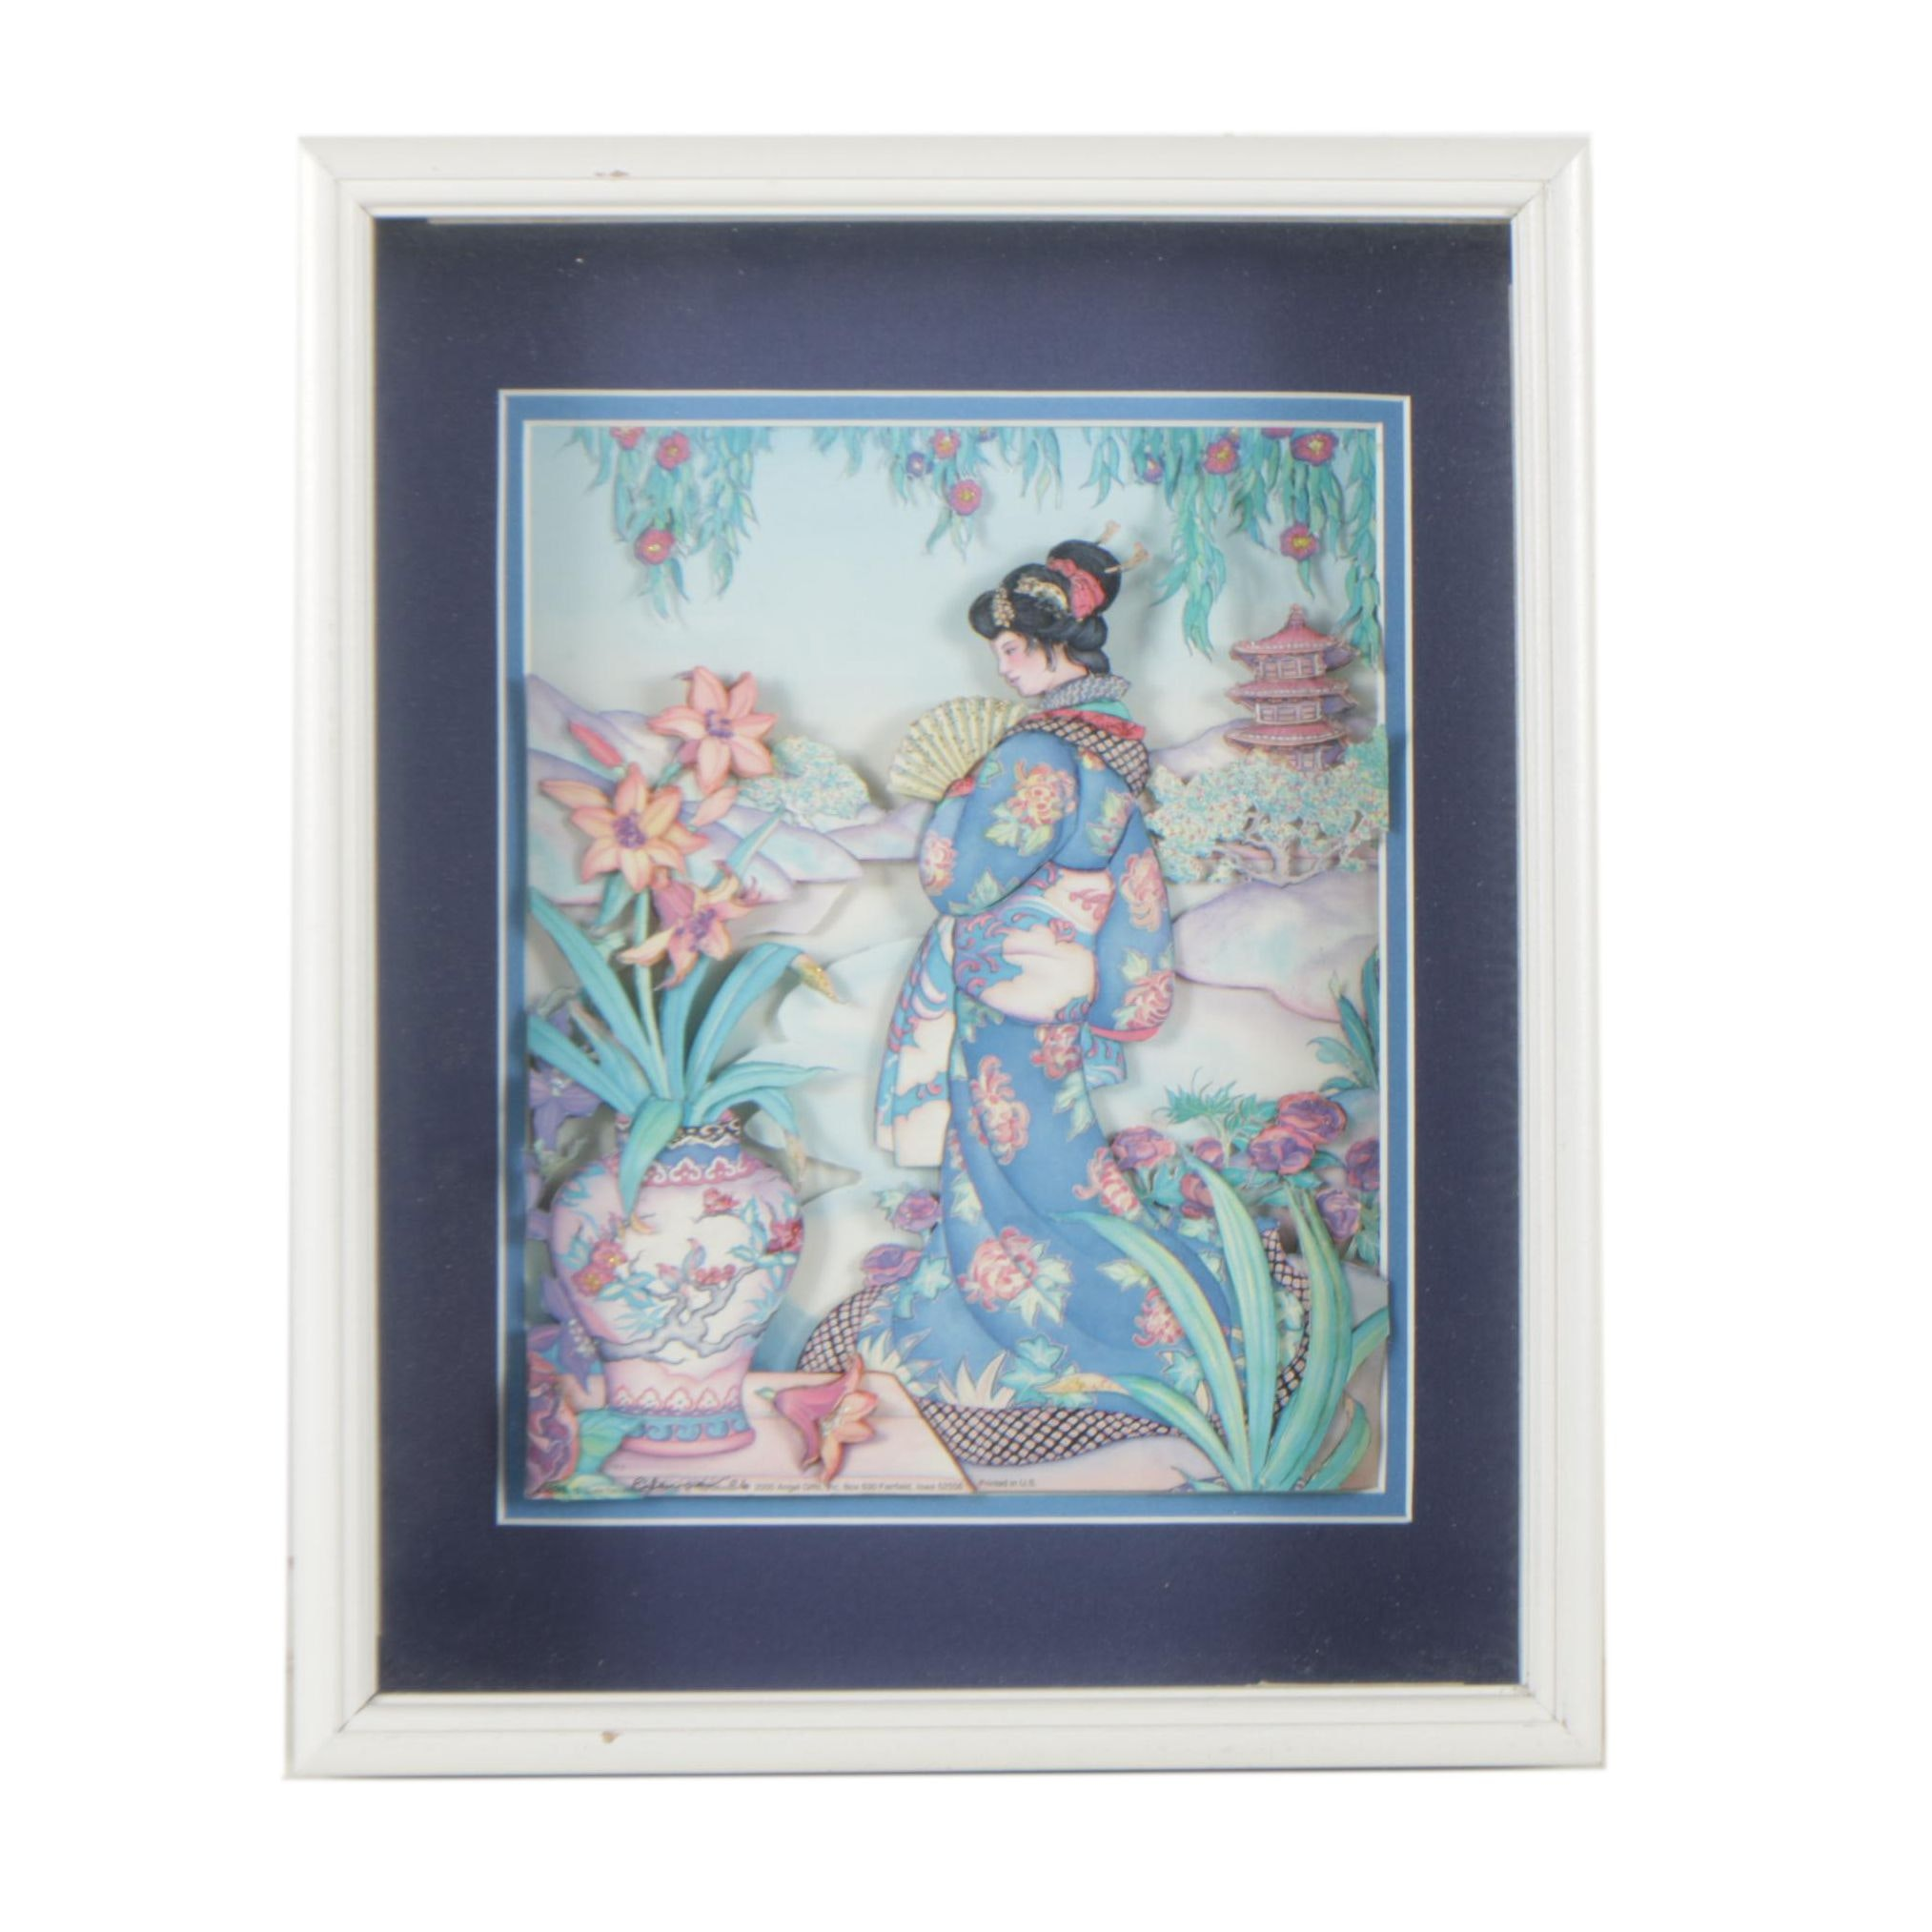 Layered East Asian Style Offset Lithograph Print